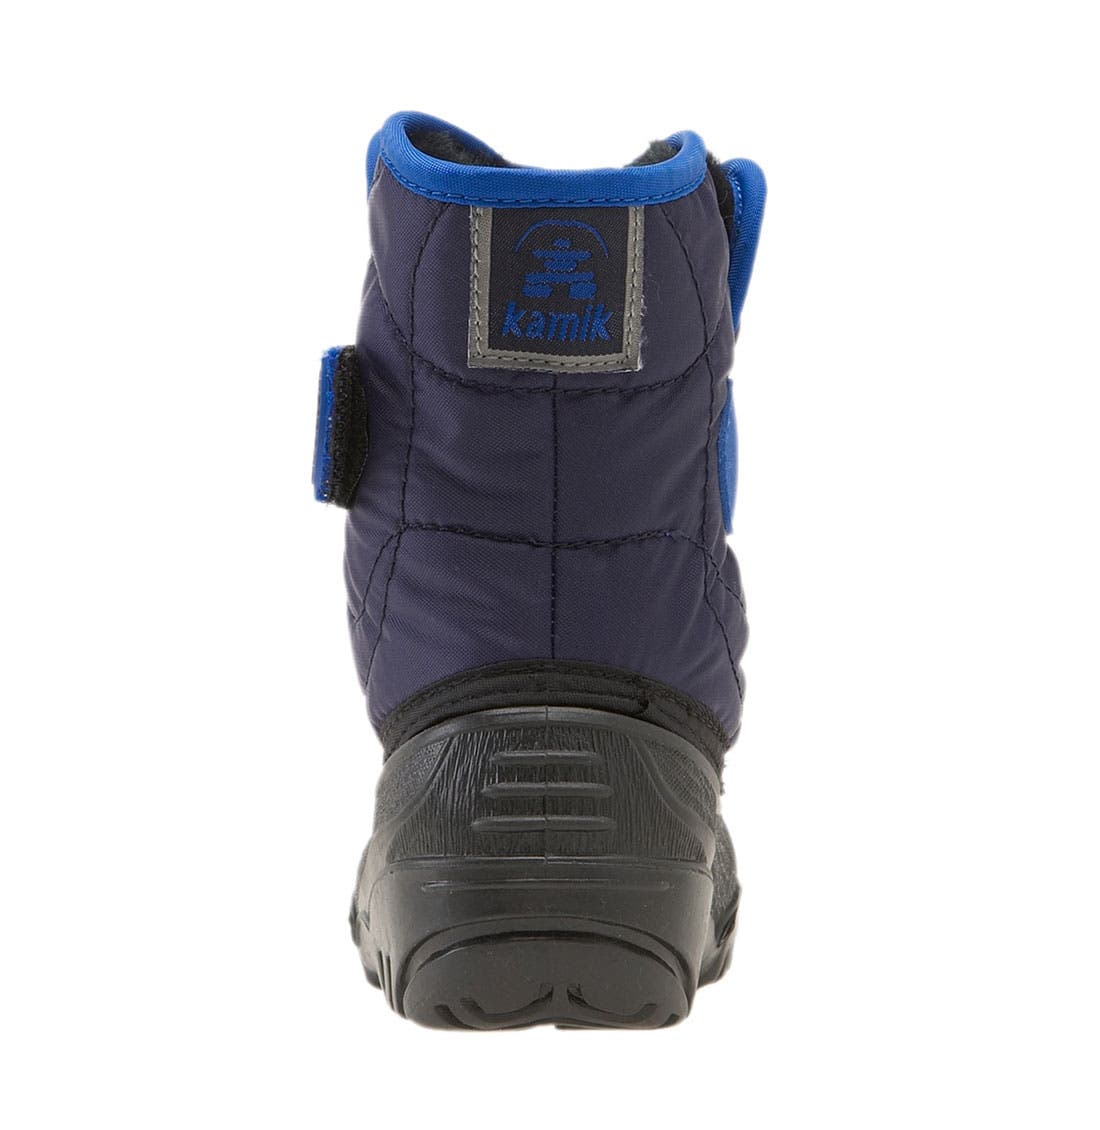 Alternate Image 4  - Kamik 'Snowbug' Waterproof Boot (Walker & Toddler)